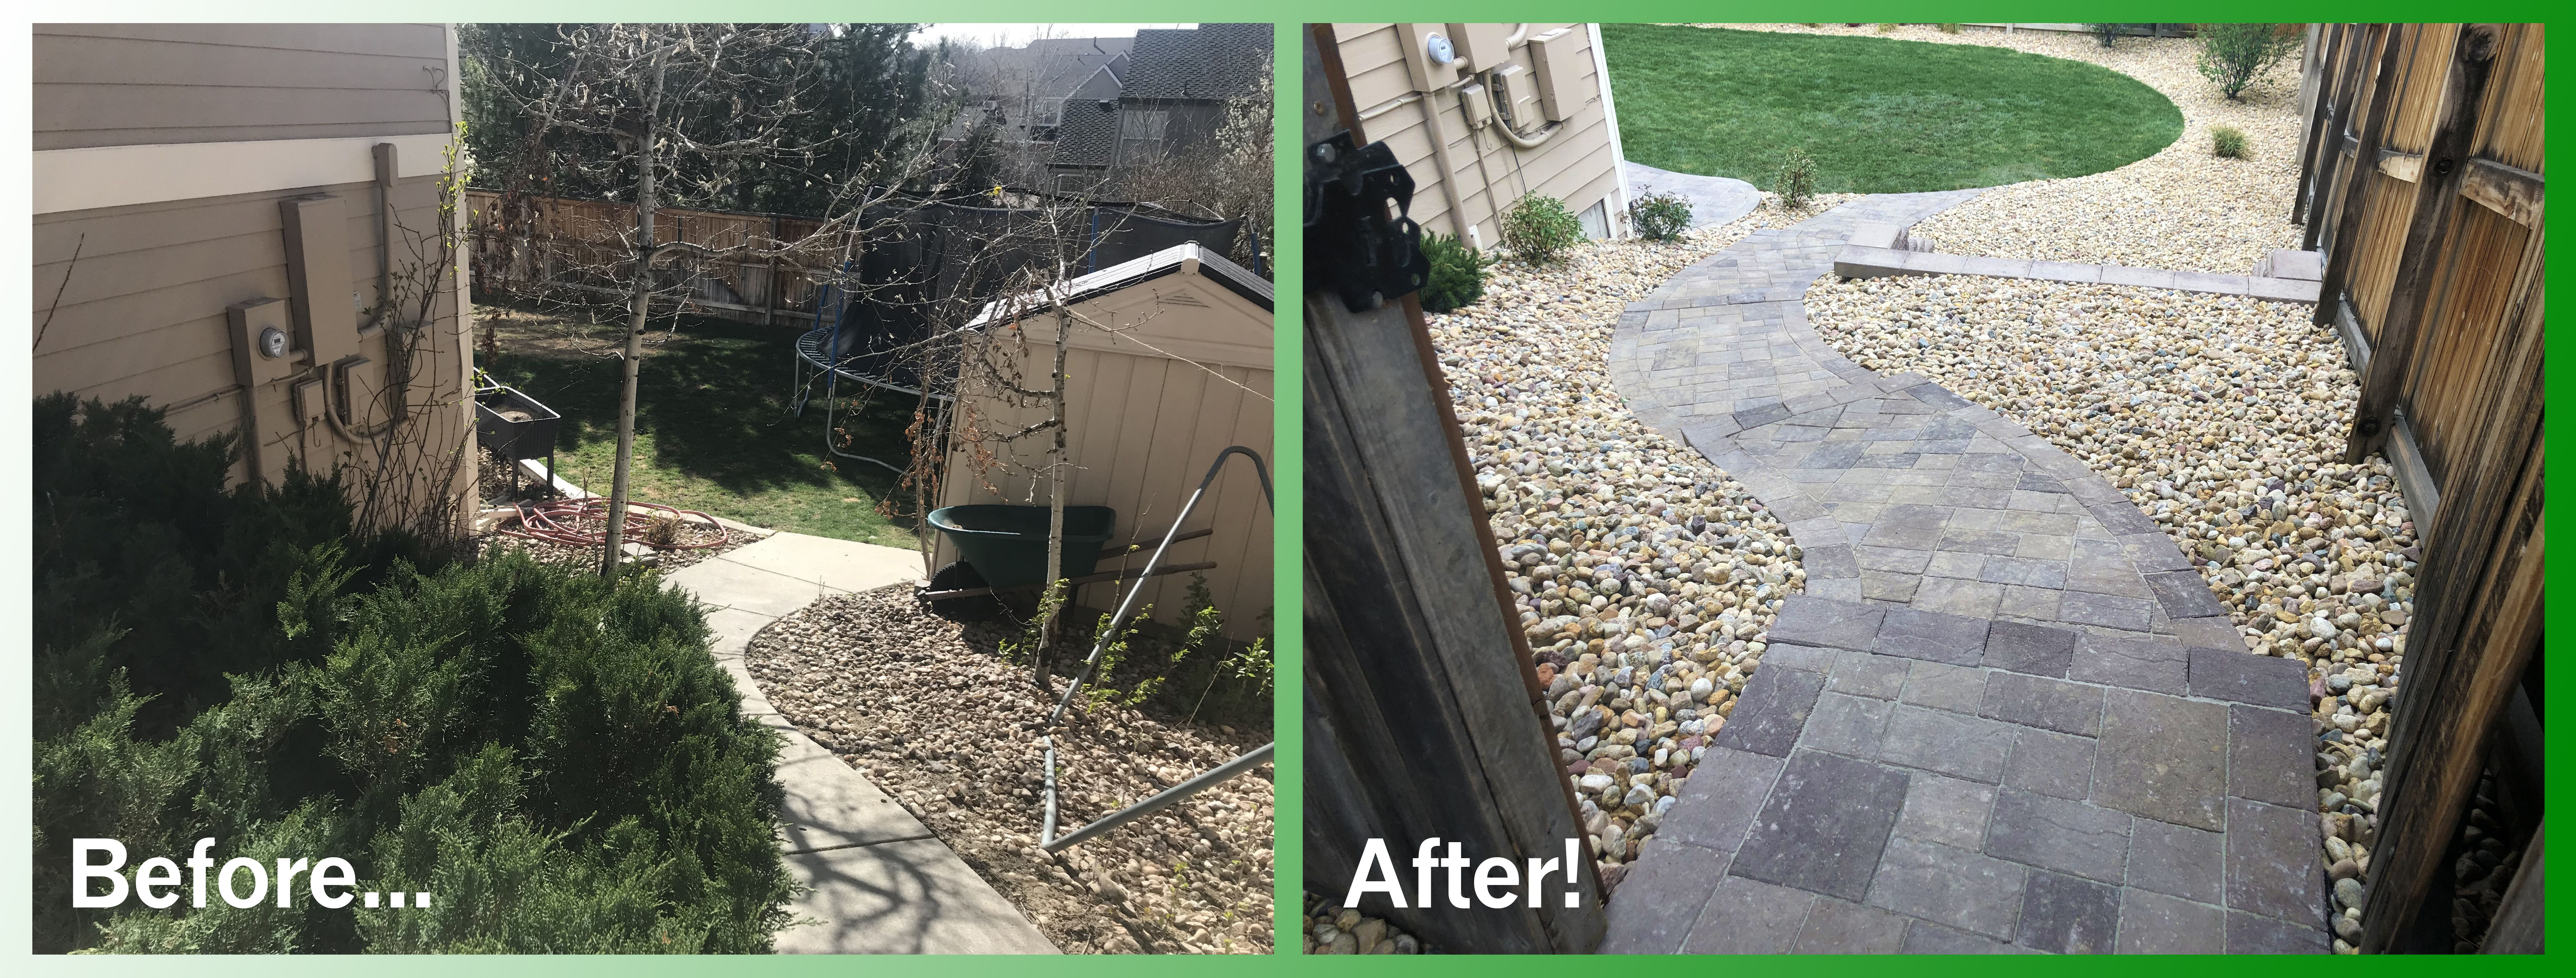 Before After Of Back Yard Landscape Project Landscape Projects Landscaping Around Trees Yard Landscaping